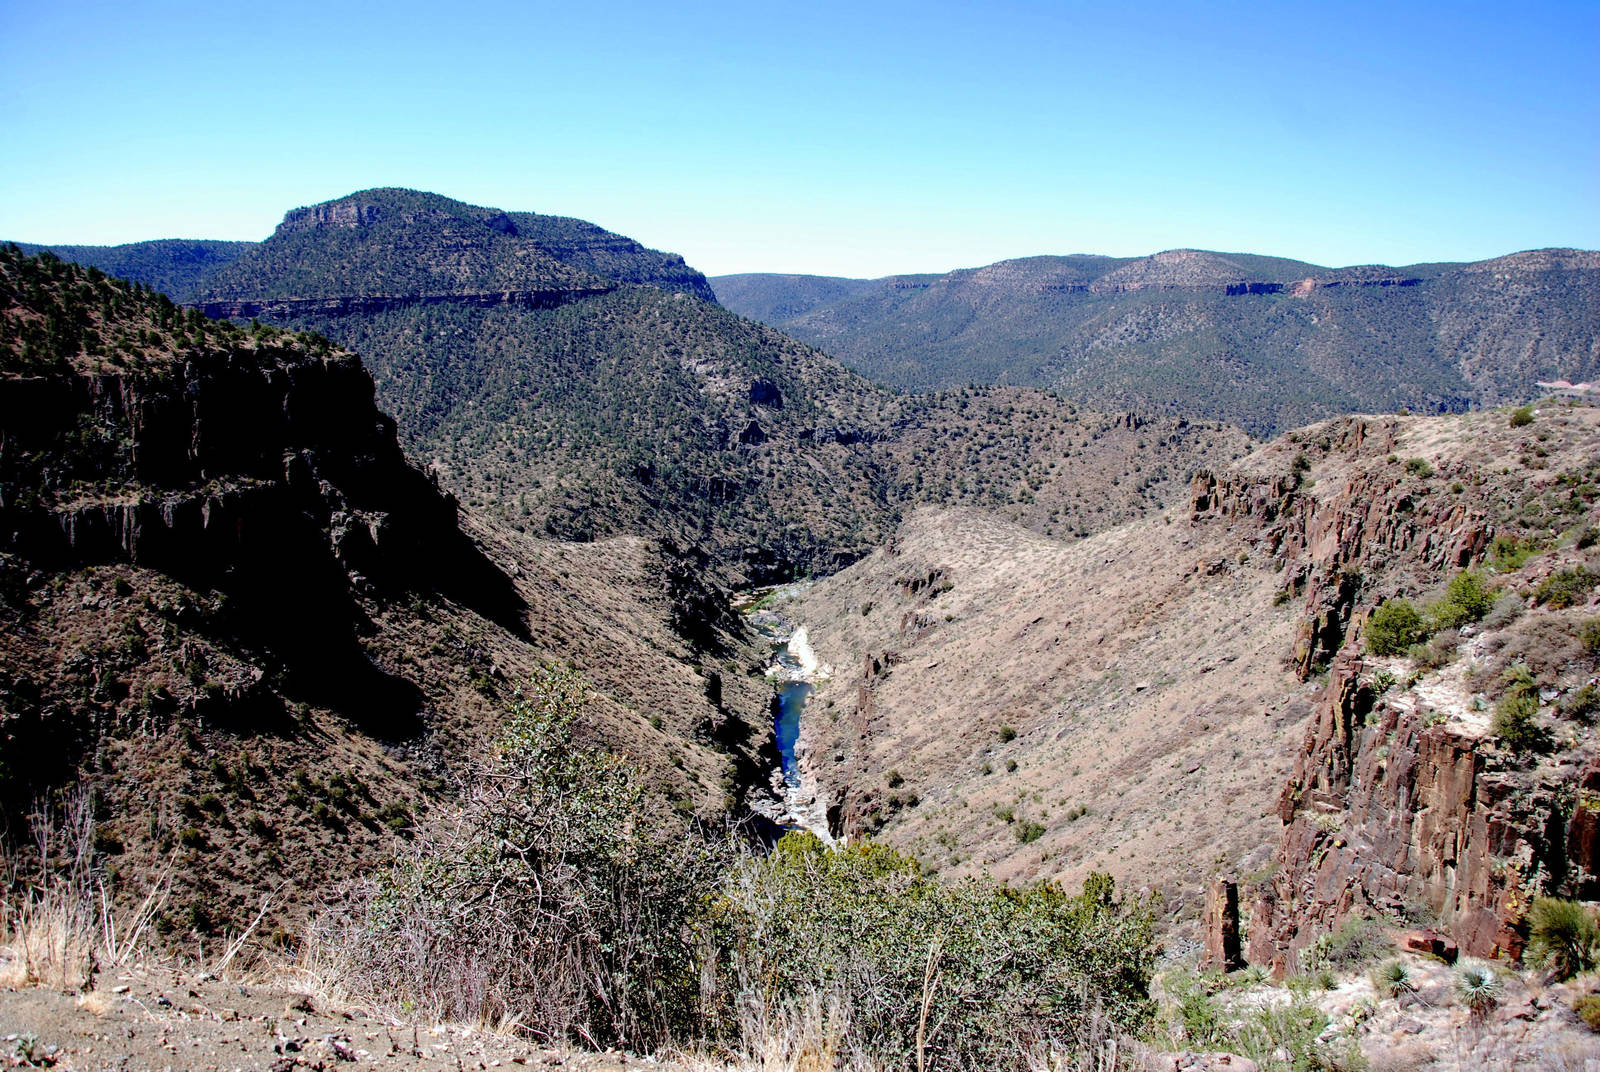 Salt River Canyon by SuicideBySafetyPin